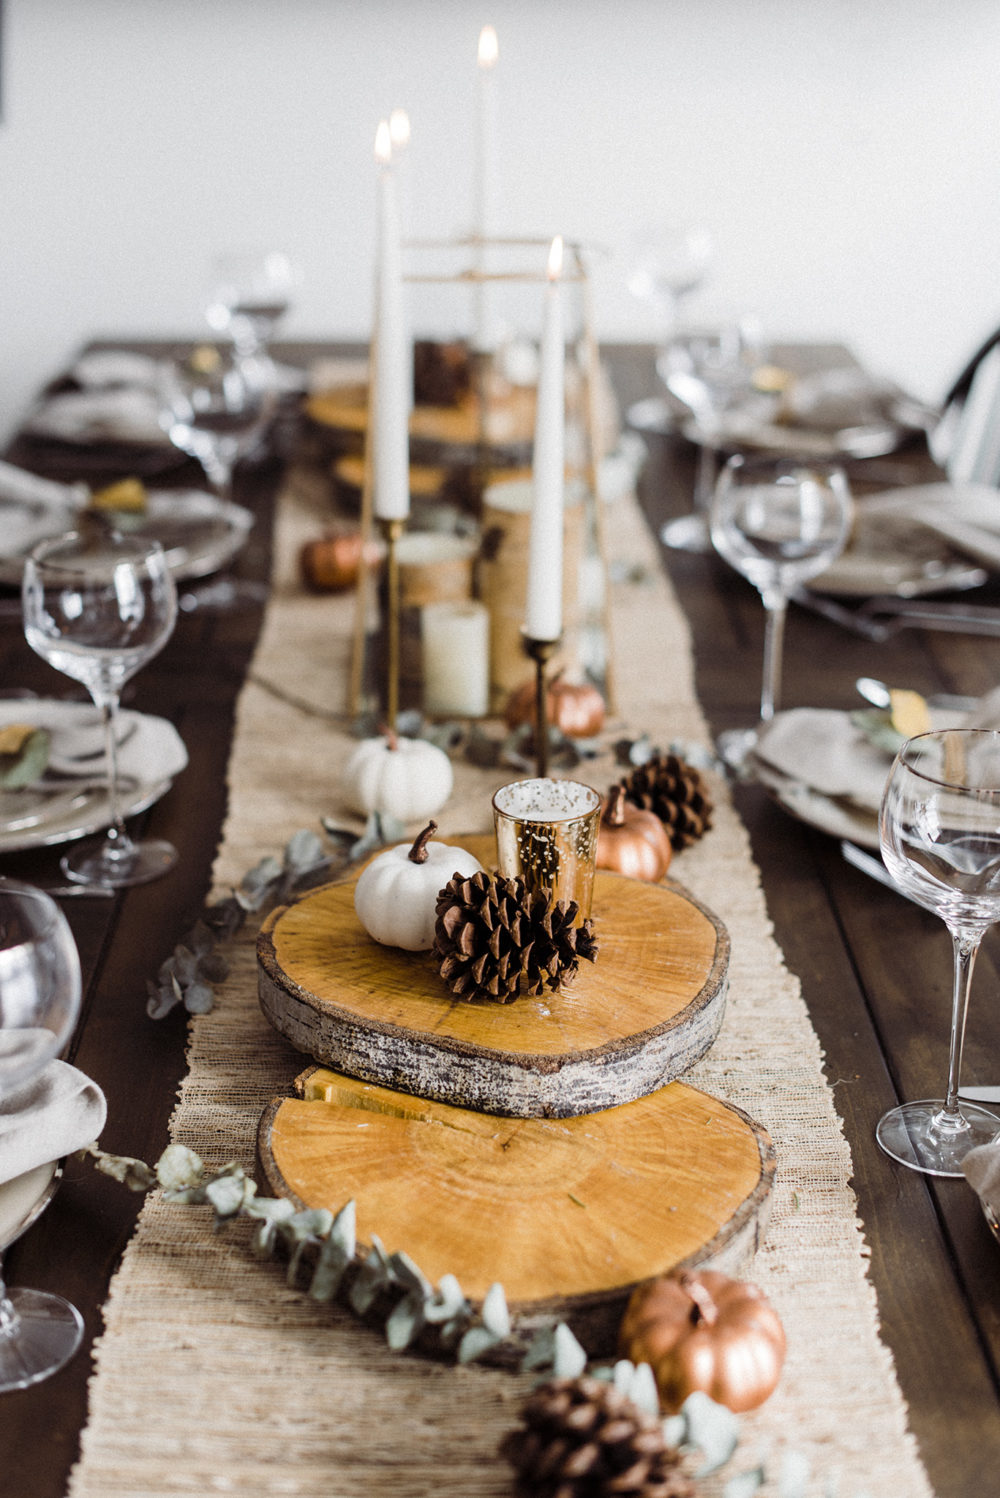 Rustic Thanksgiving Tabletop Decor via Joyfullygrowingblog